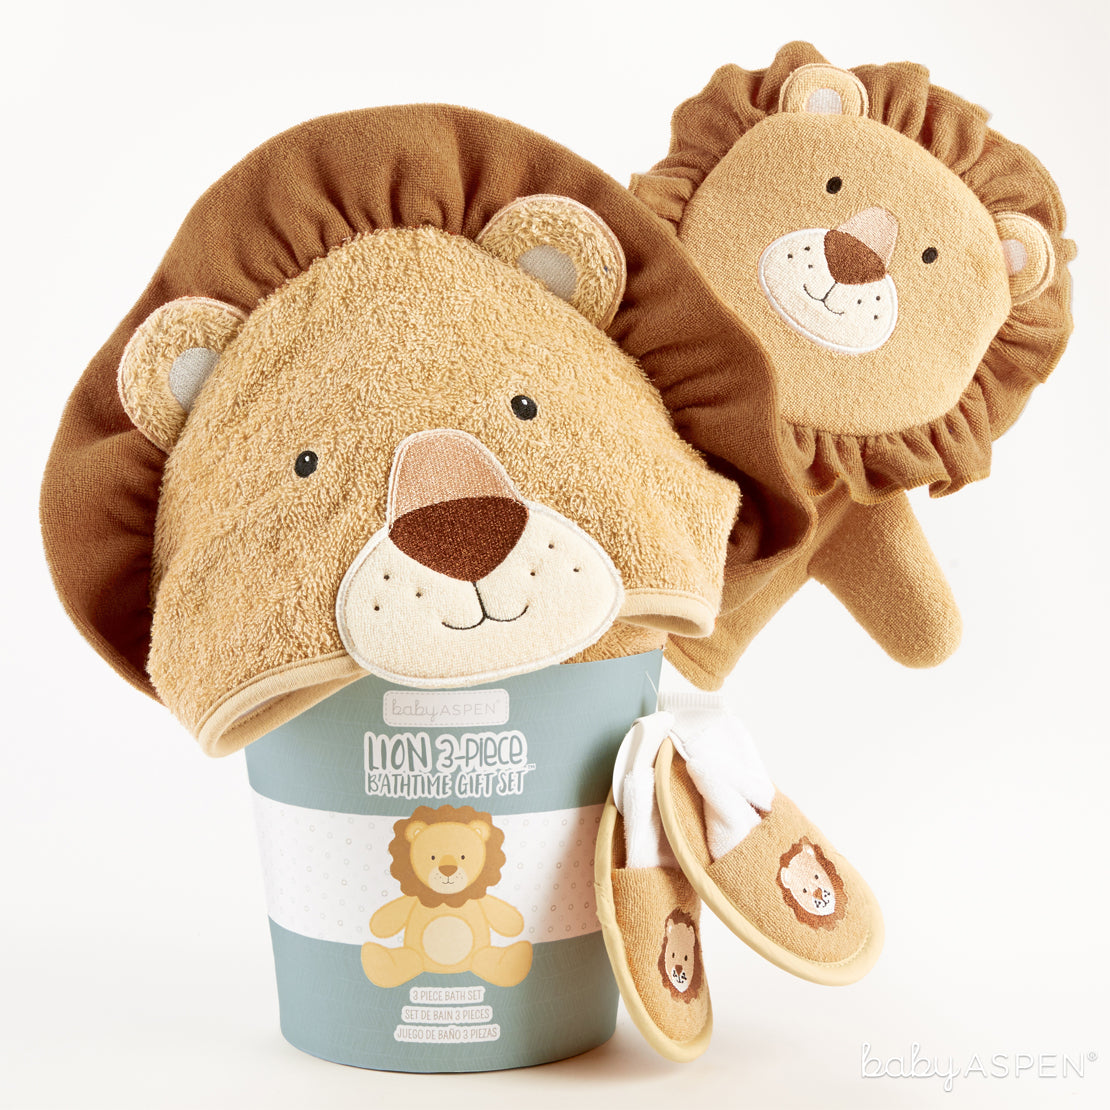 Lion Bath Set In Package | Unique Gift Sets Perfect For Any Baby Shower | Baby Aspen